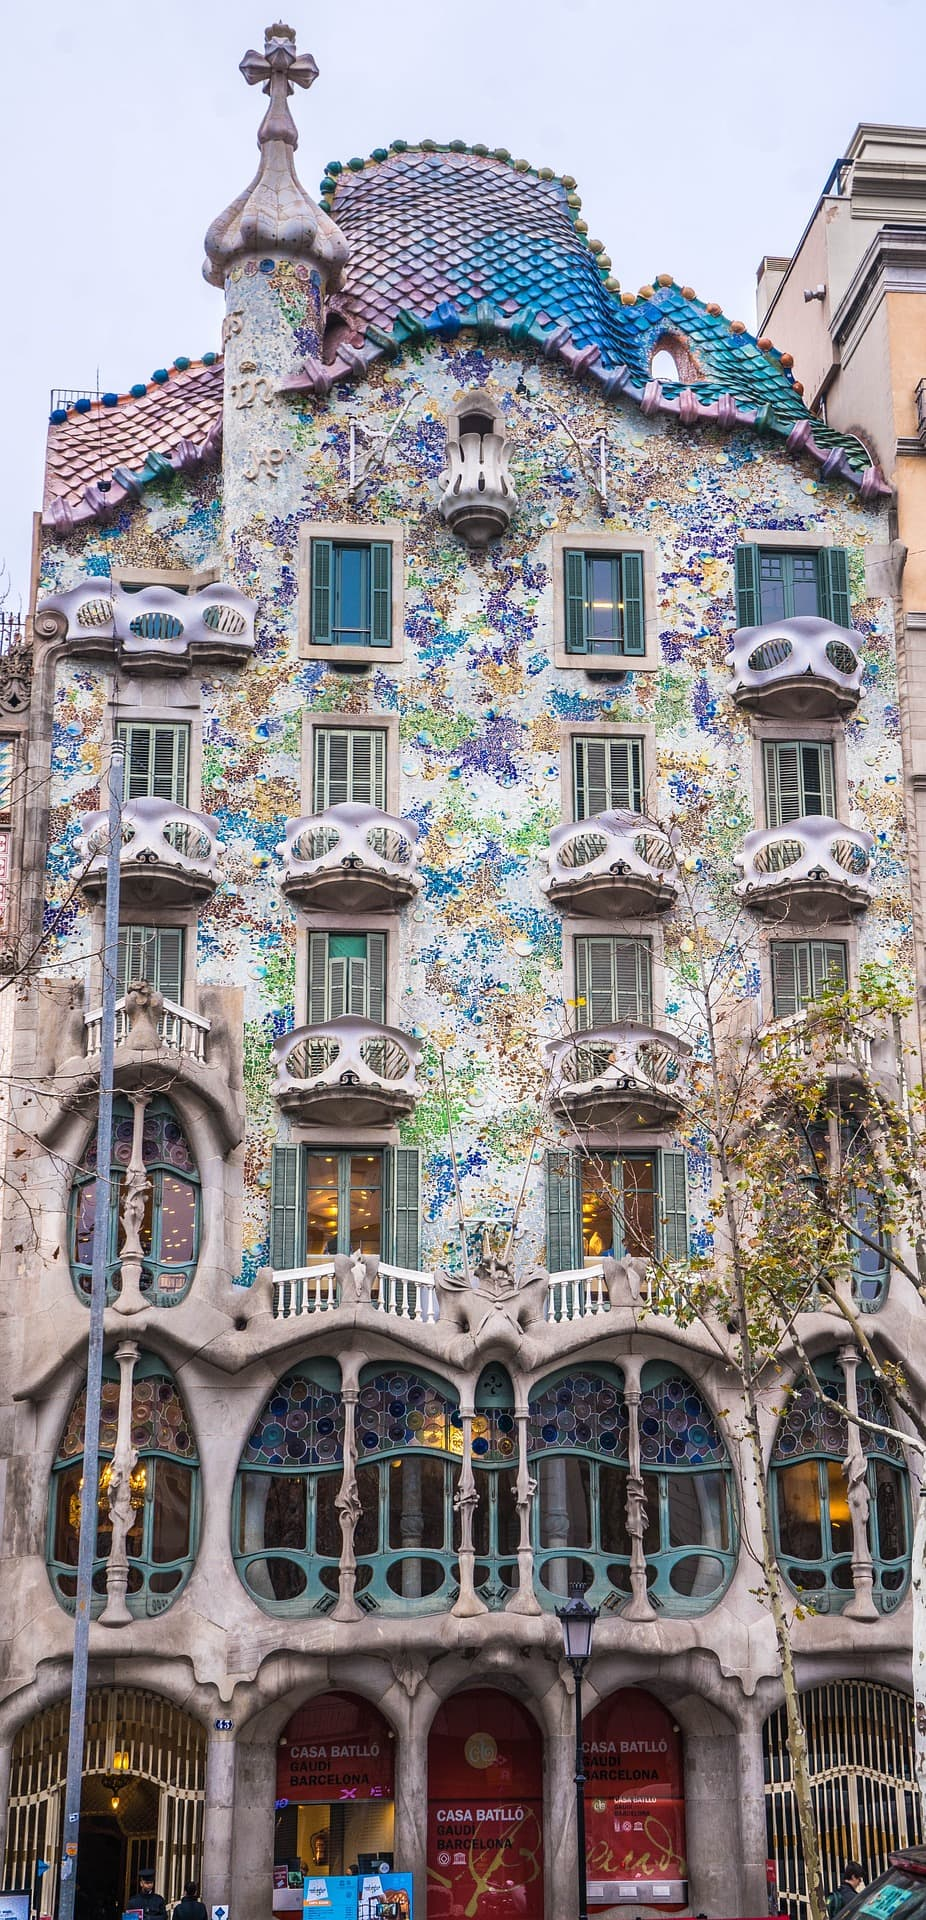 Casa Batllo on a one day in Barcelona tour